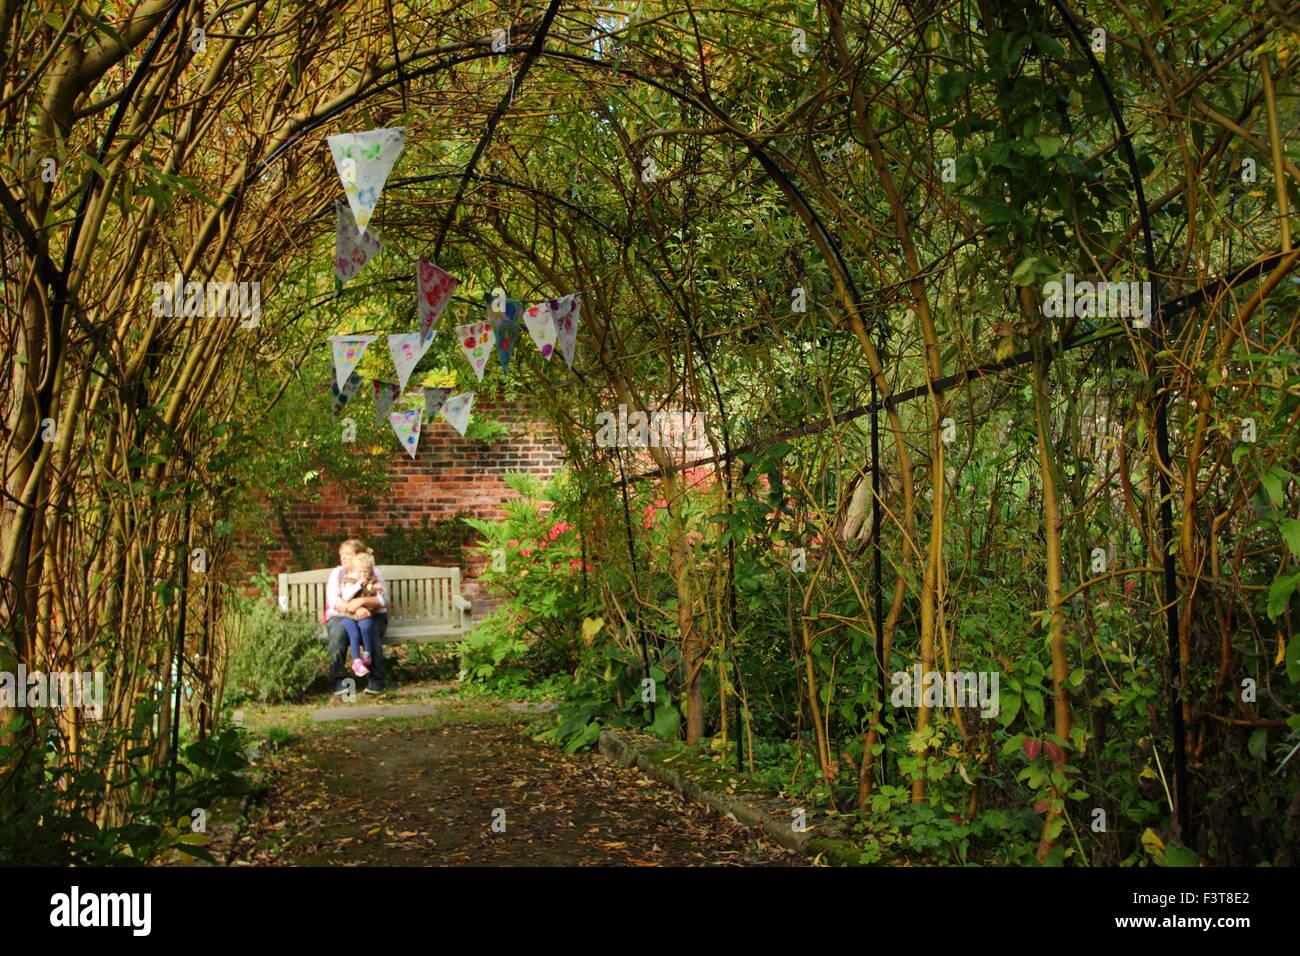 A Willow Arch Fashioned As A Tunnel Frames A Garden Bench In A Walled Garden  Where